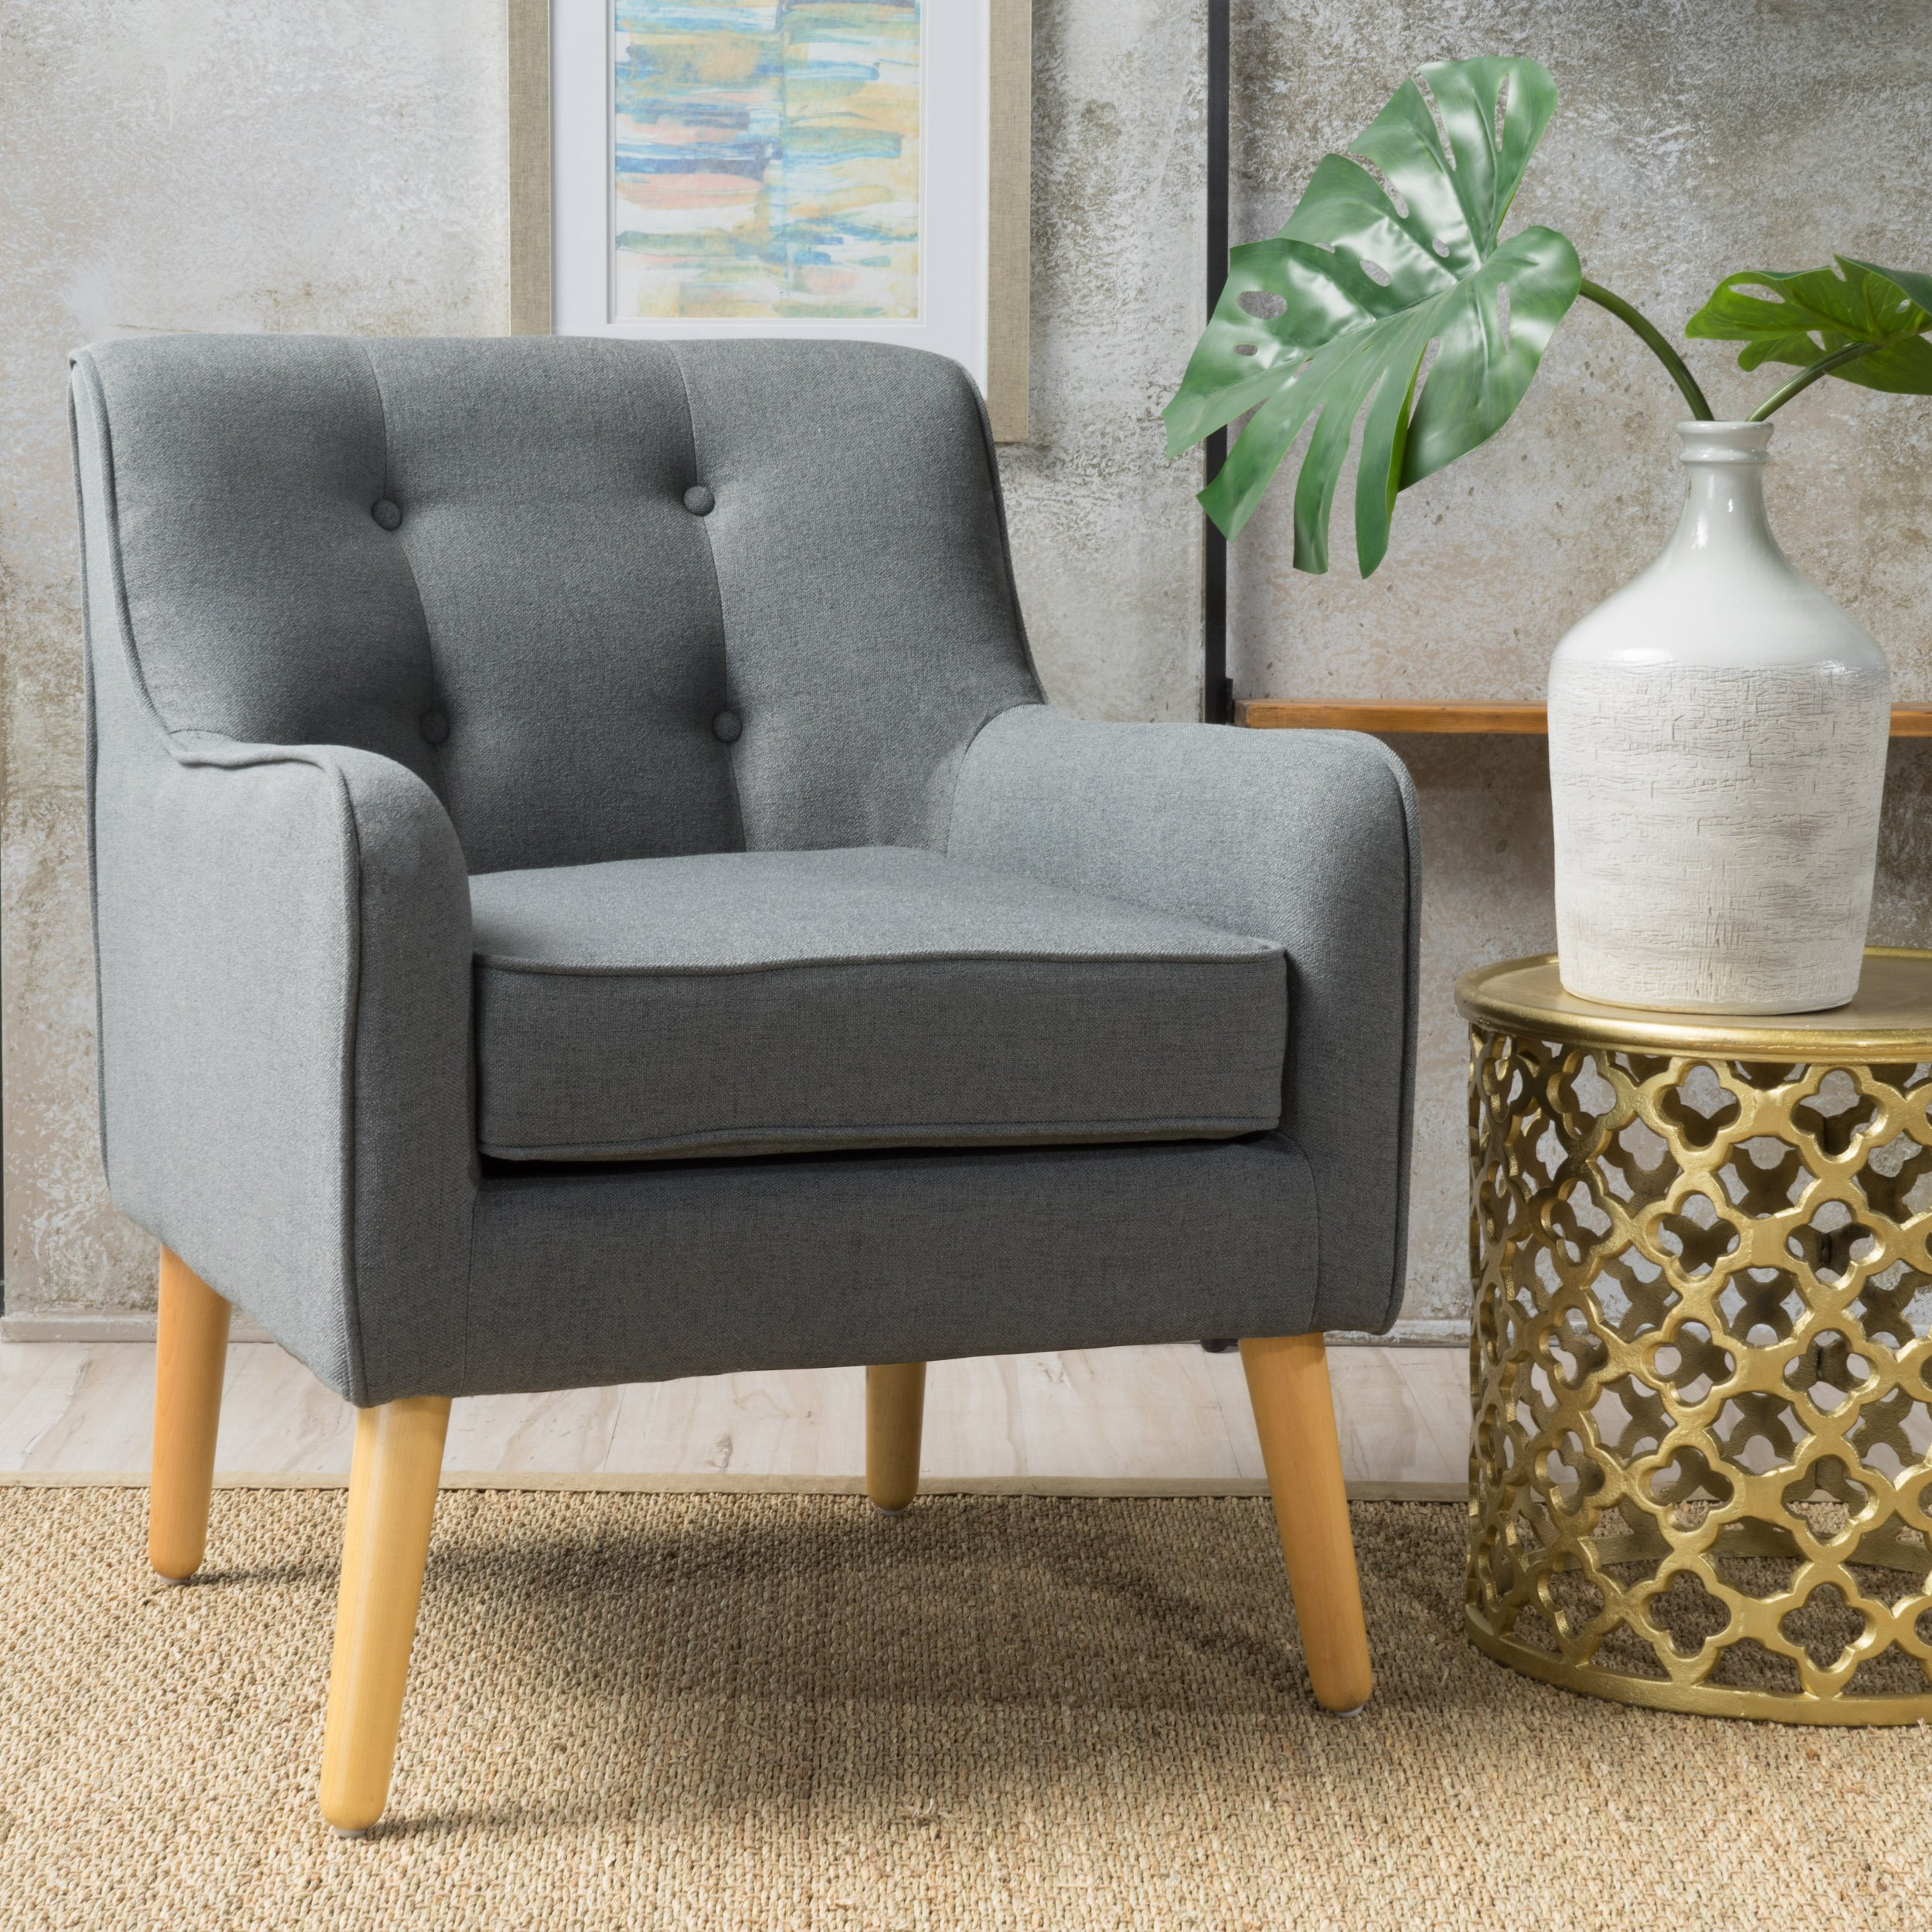 Christopher Knight Home Felicity Arm Chair, Charcoal by Christopher Knight Home